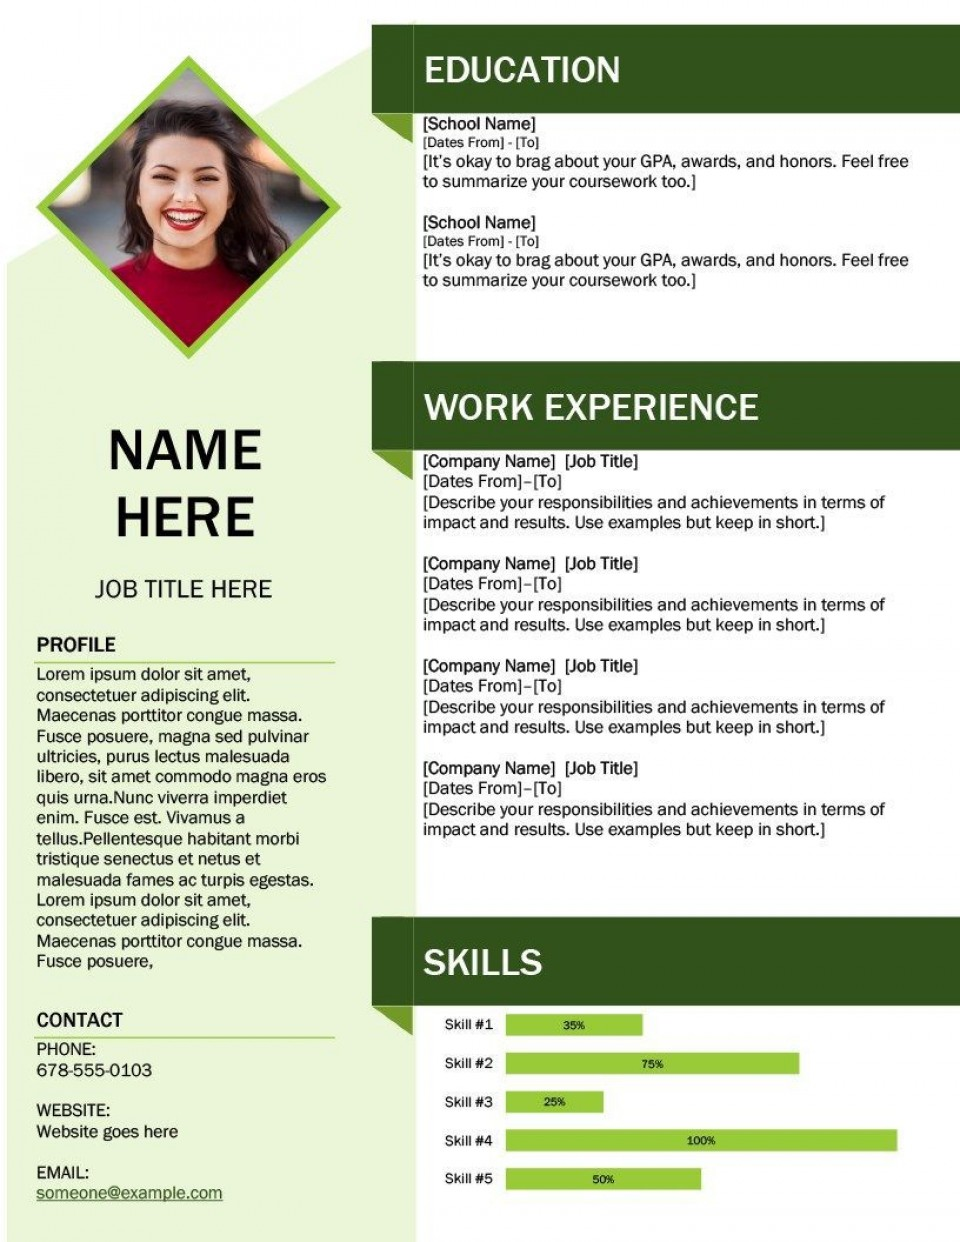 003 Marvelou Word Resume Template Free Download Idea  M Creative Curriculum Vitae Cv960